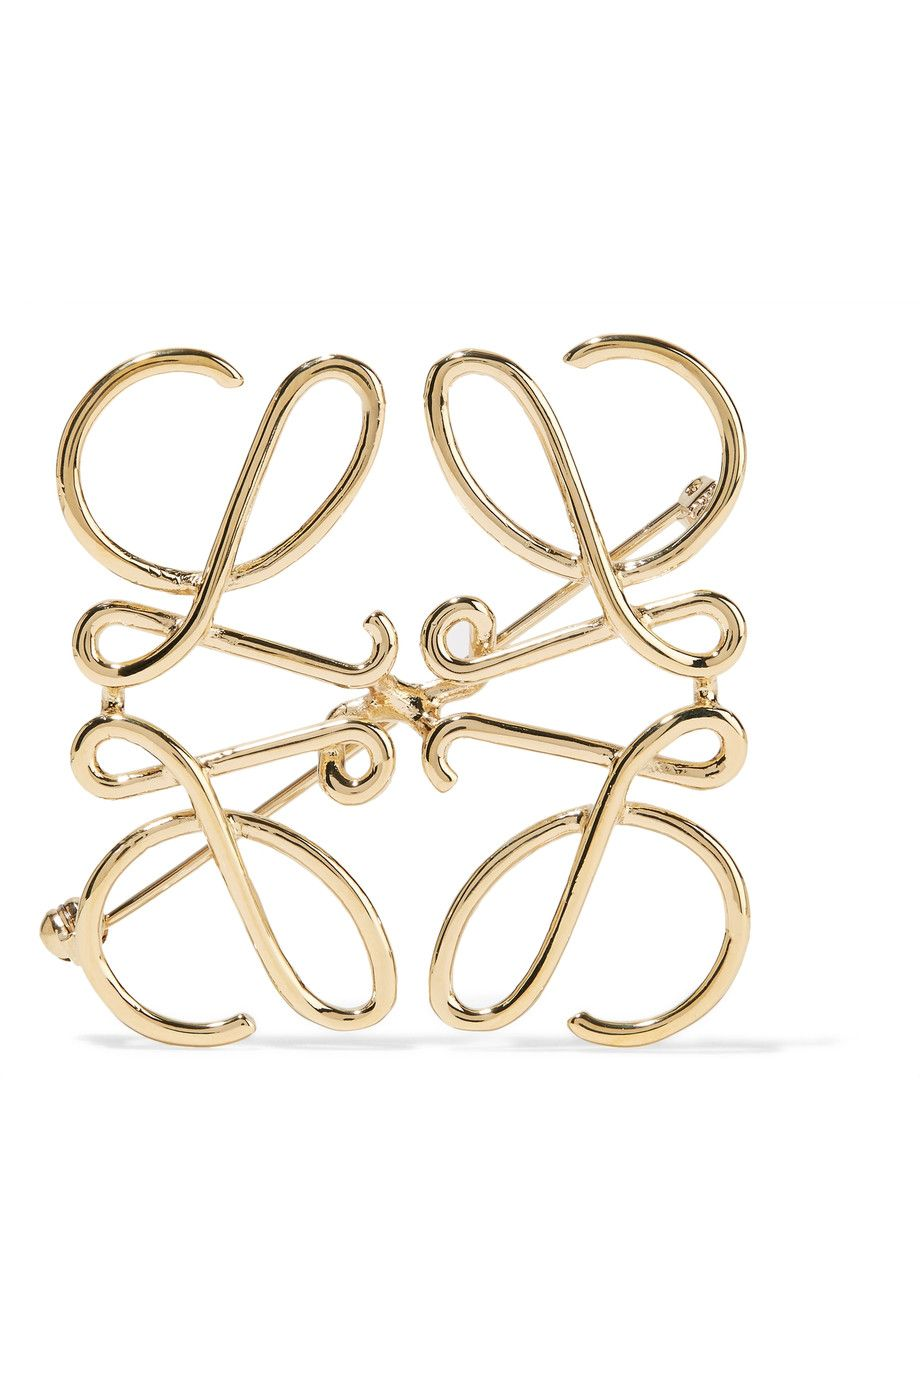 Loewe Brooch and Pin for Women On Sale in Outlet, Silver, acetate, 2017, One Size